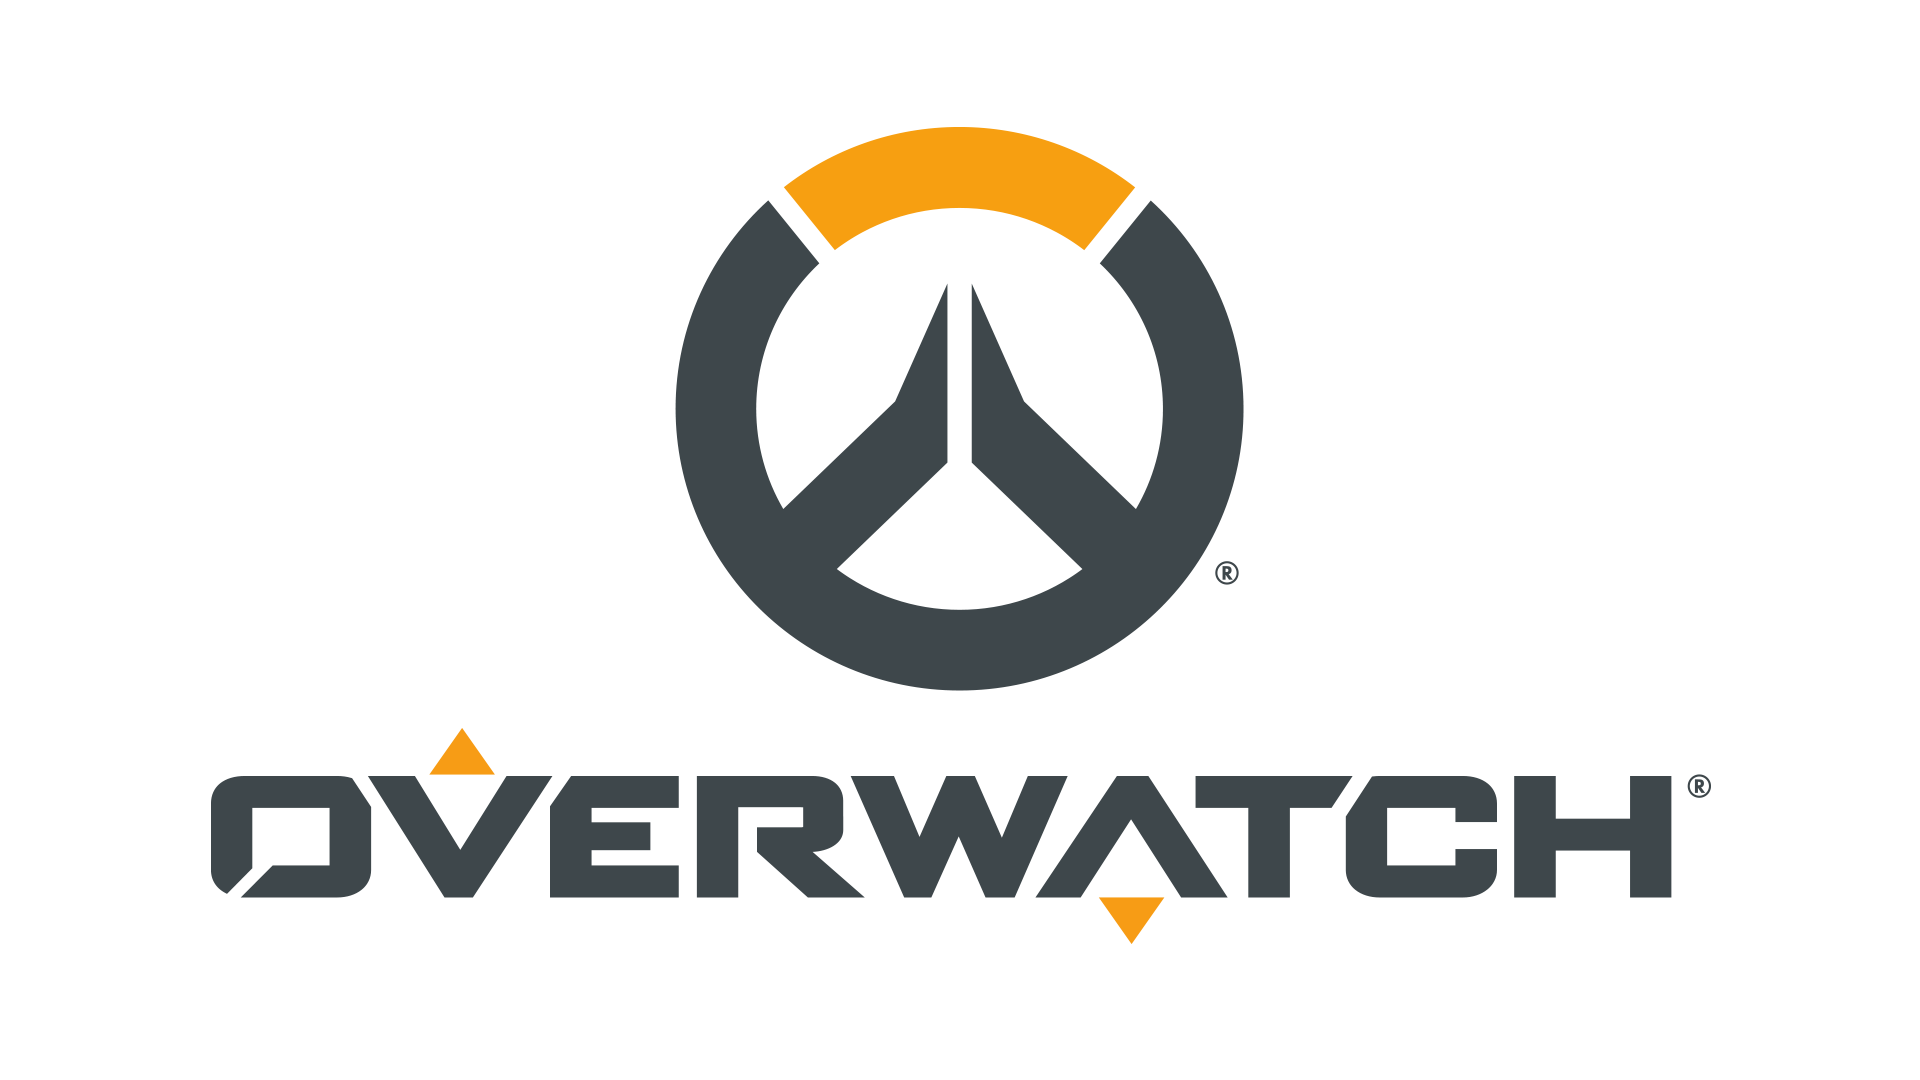 Overwatch logo png. Symbol meaning history and